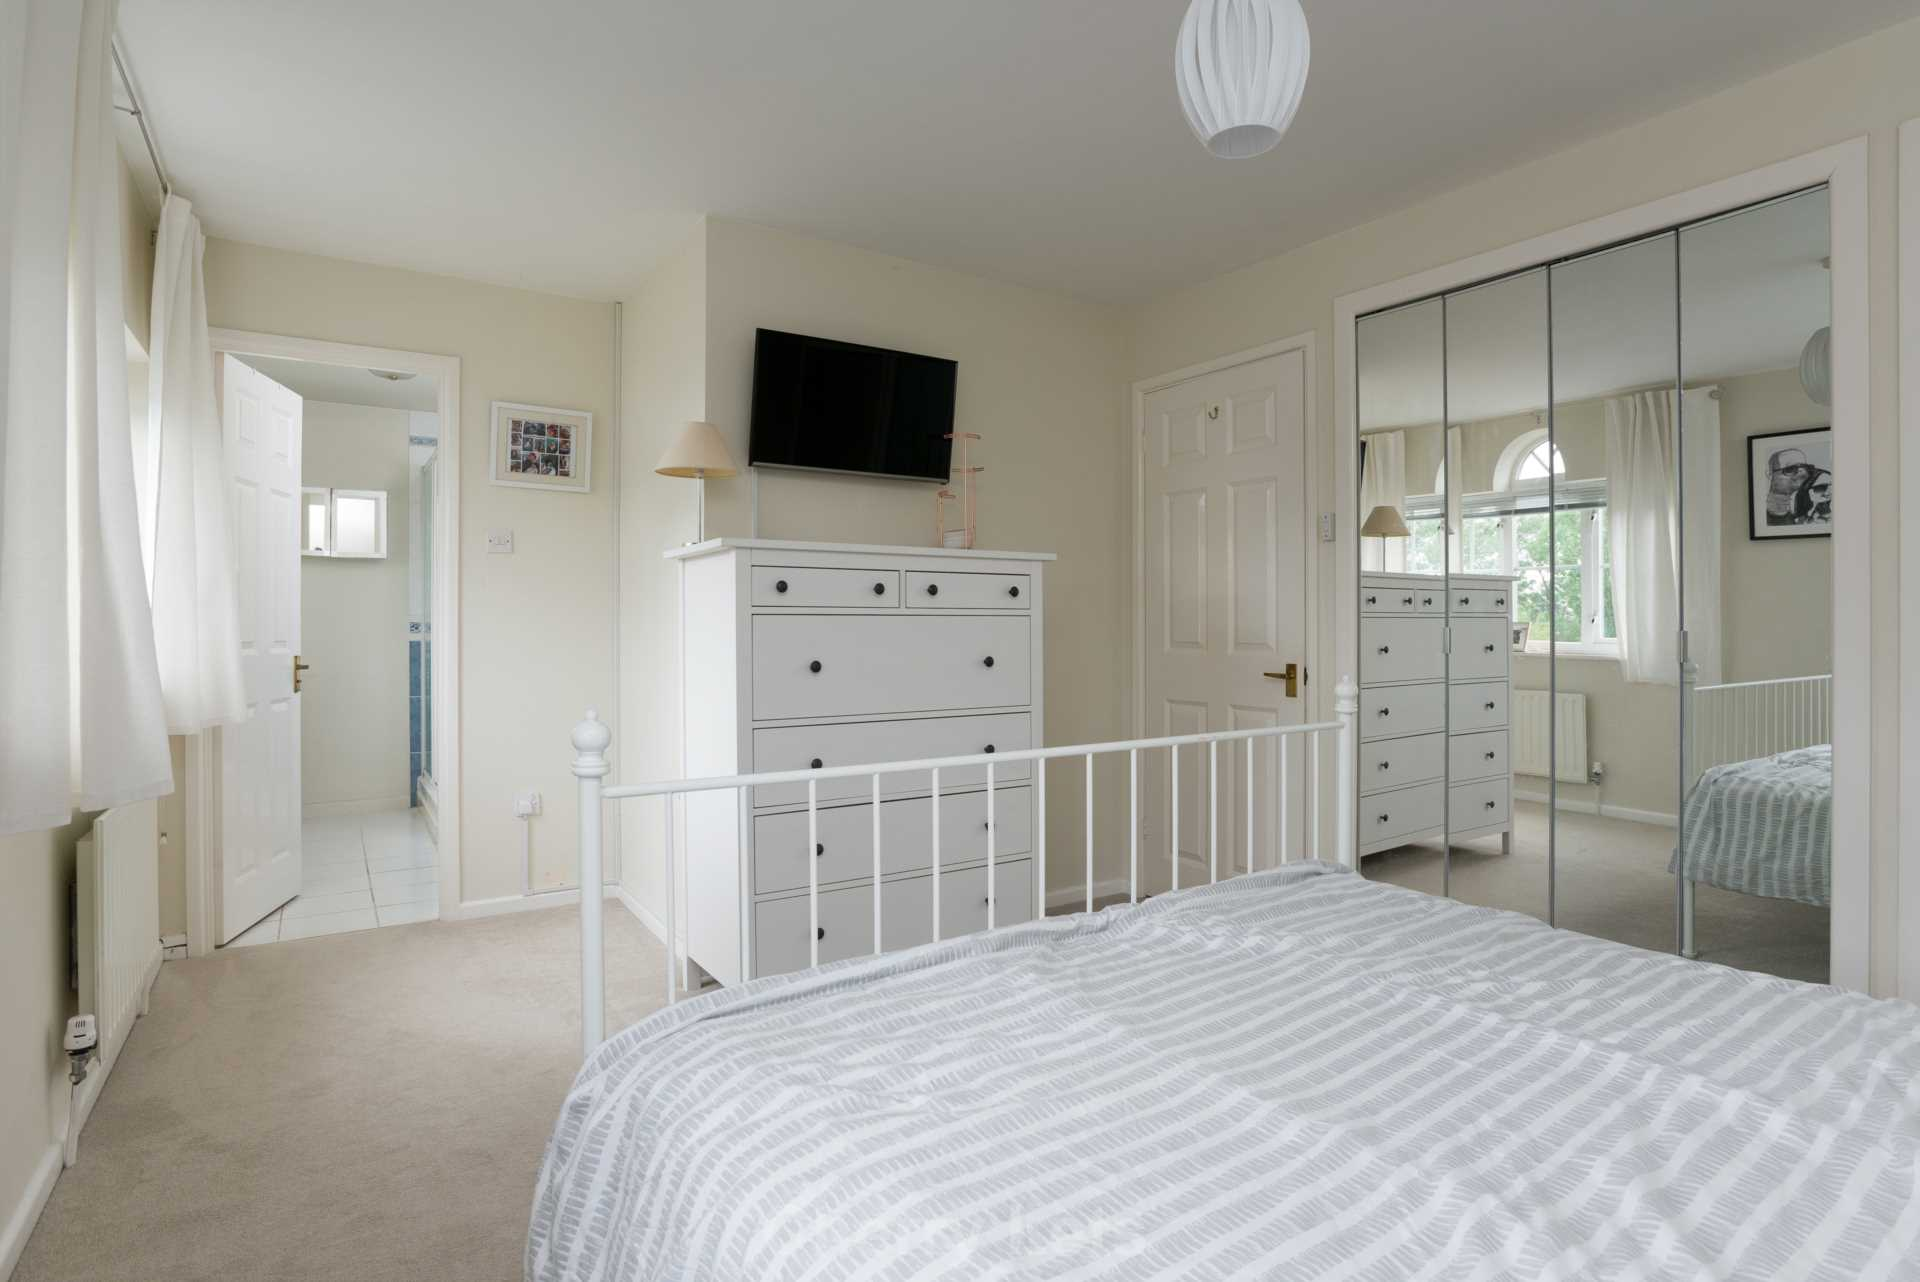 4 bed detached house to rent in Humphries Drive, Brackley, NN13  - Property Image 7